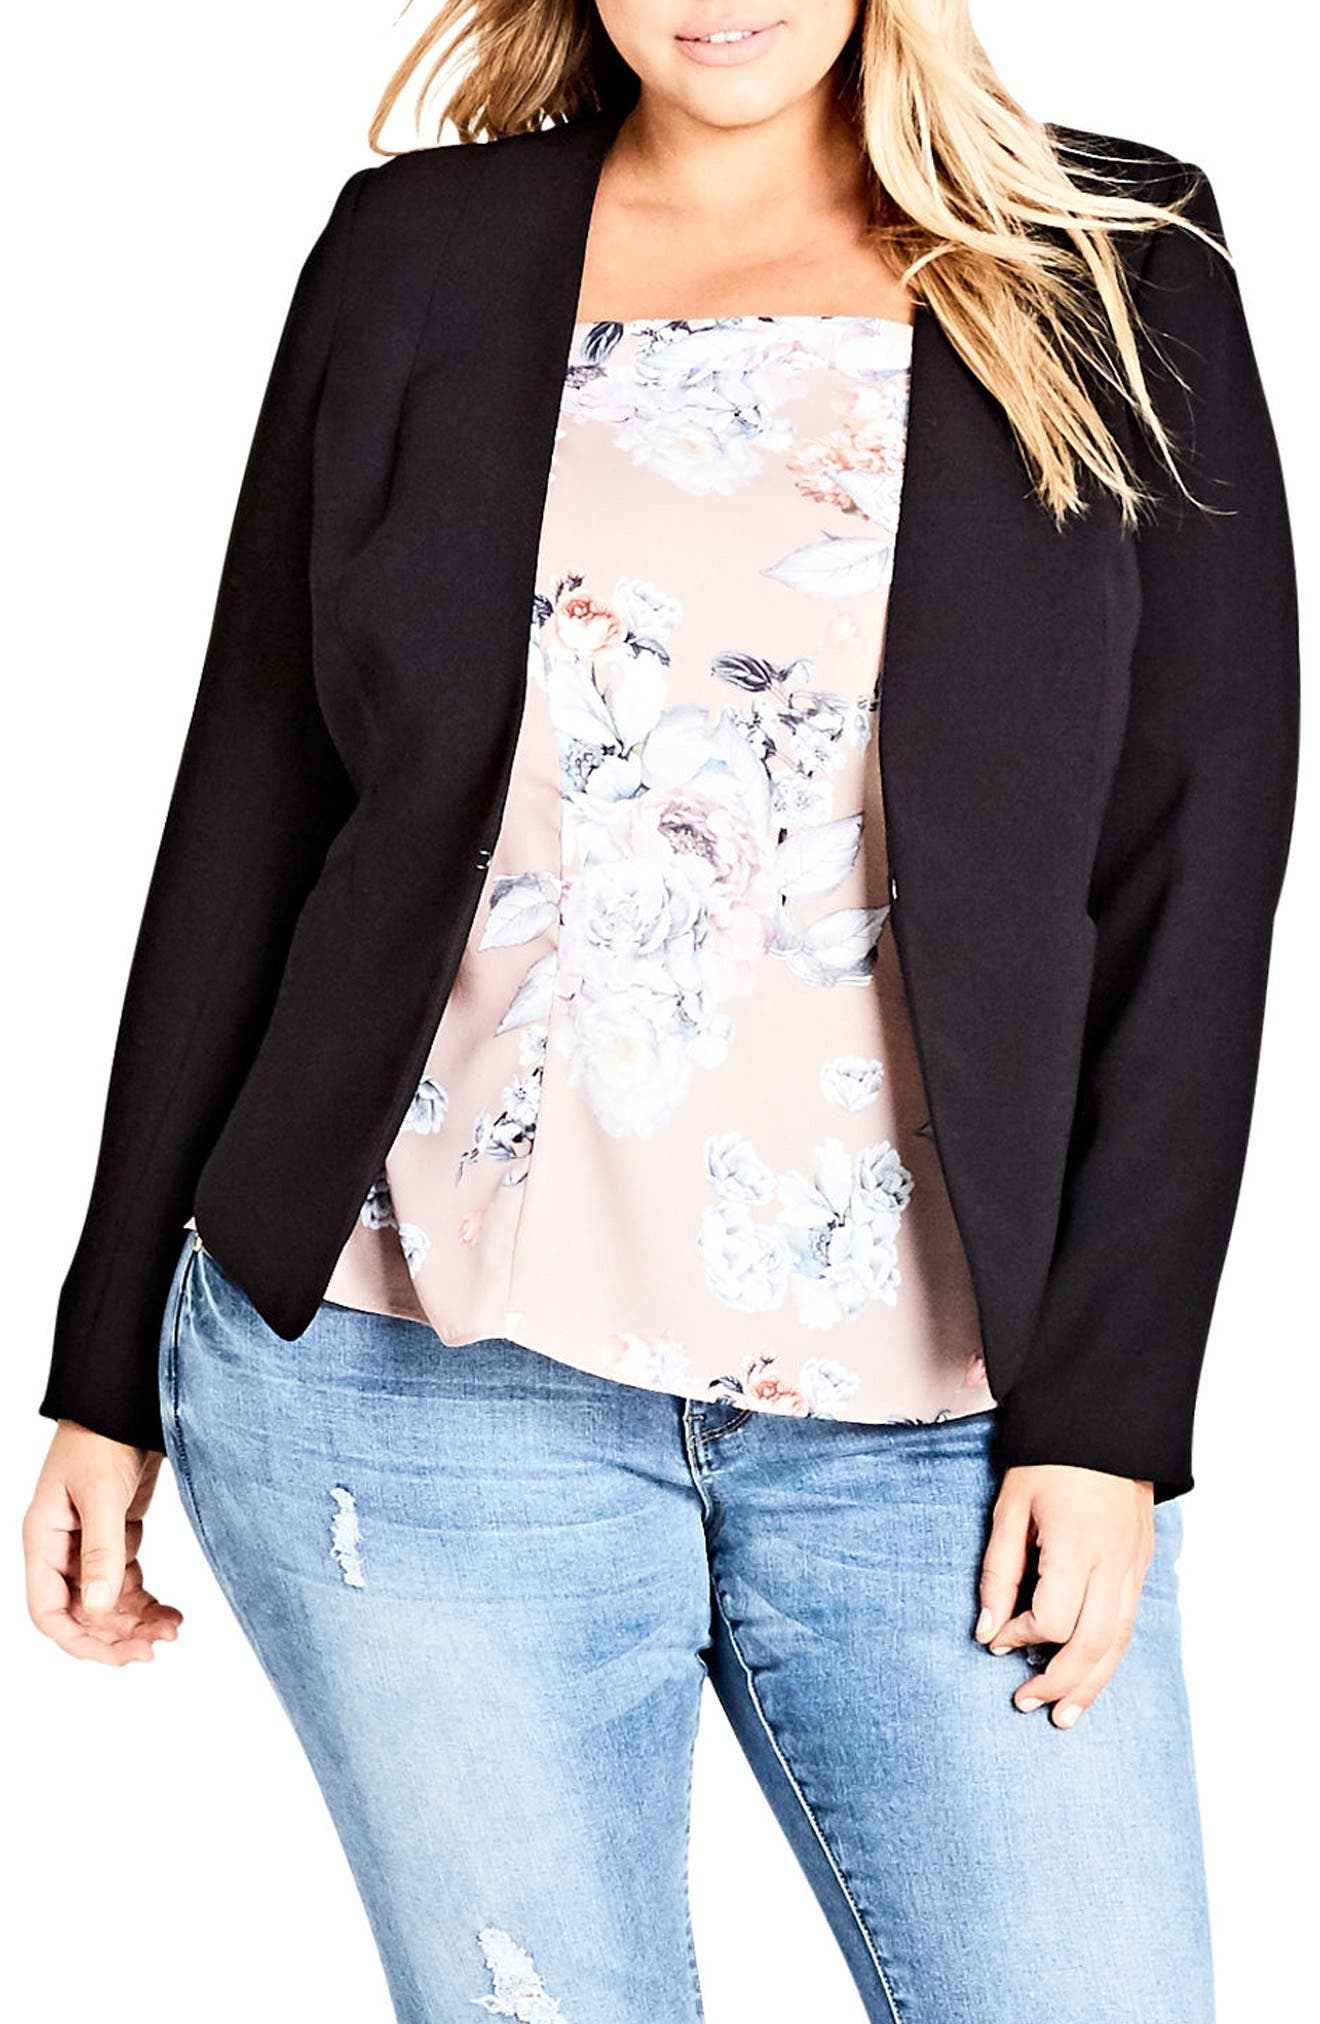 Pirouette Collarless Jacket,                         Main,                         color, BLACK